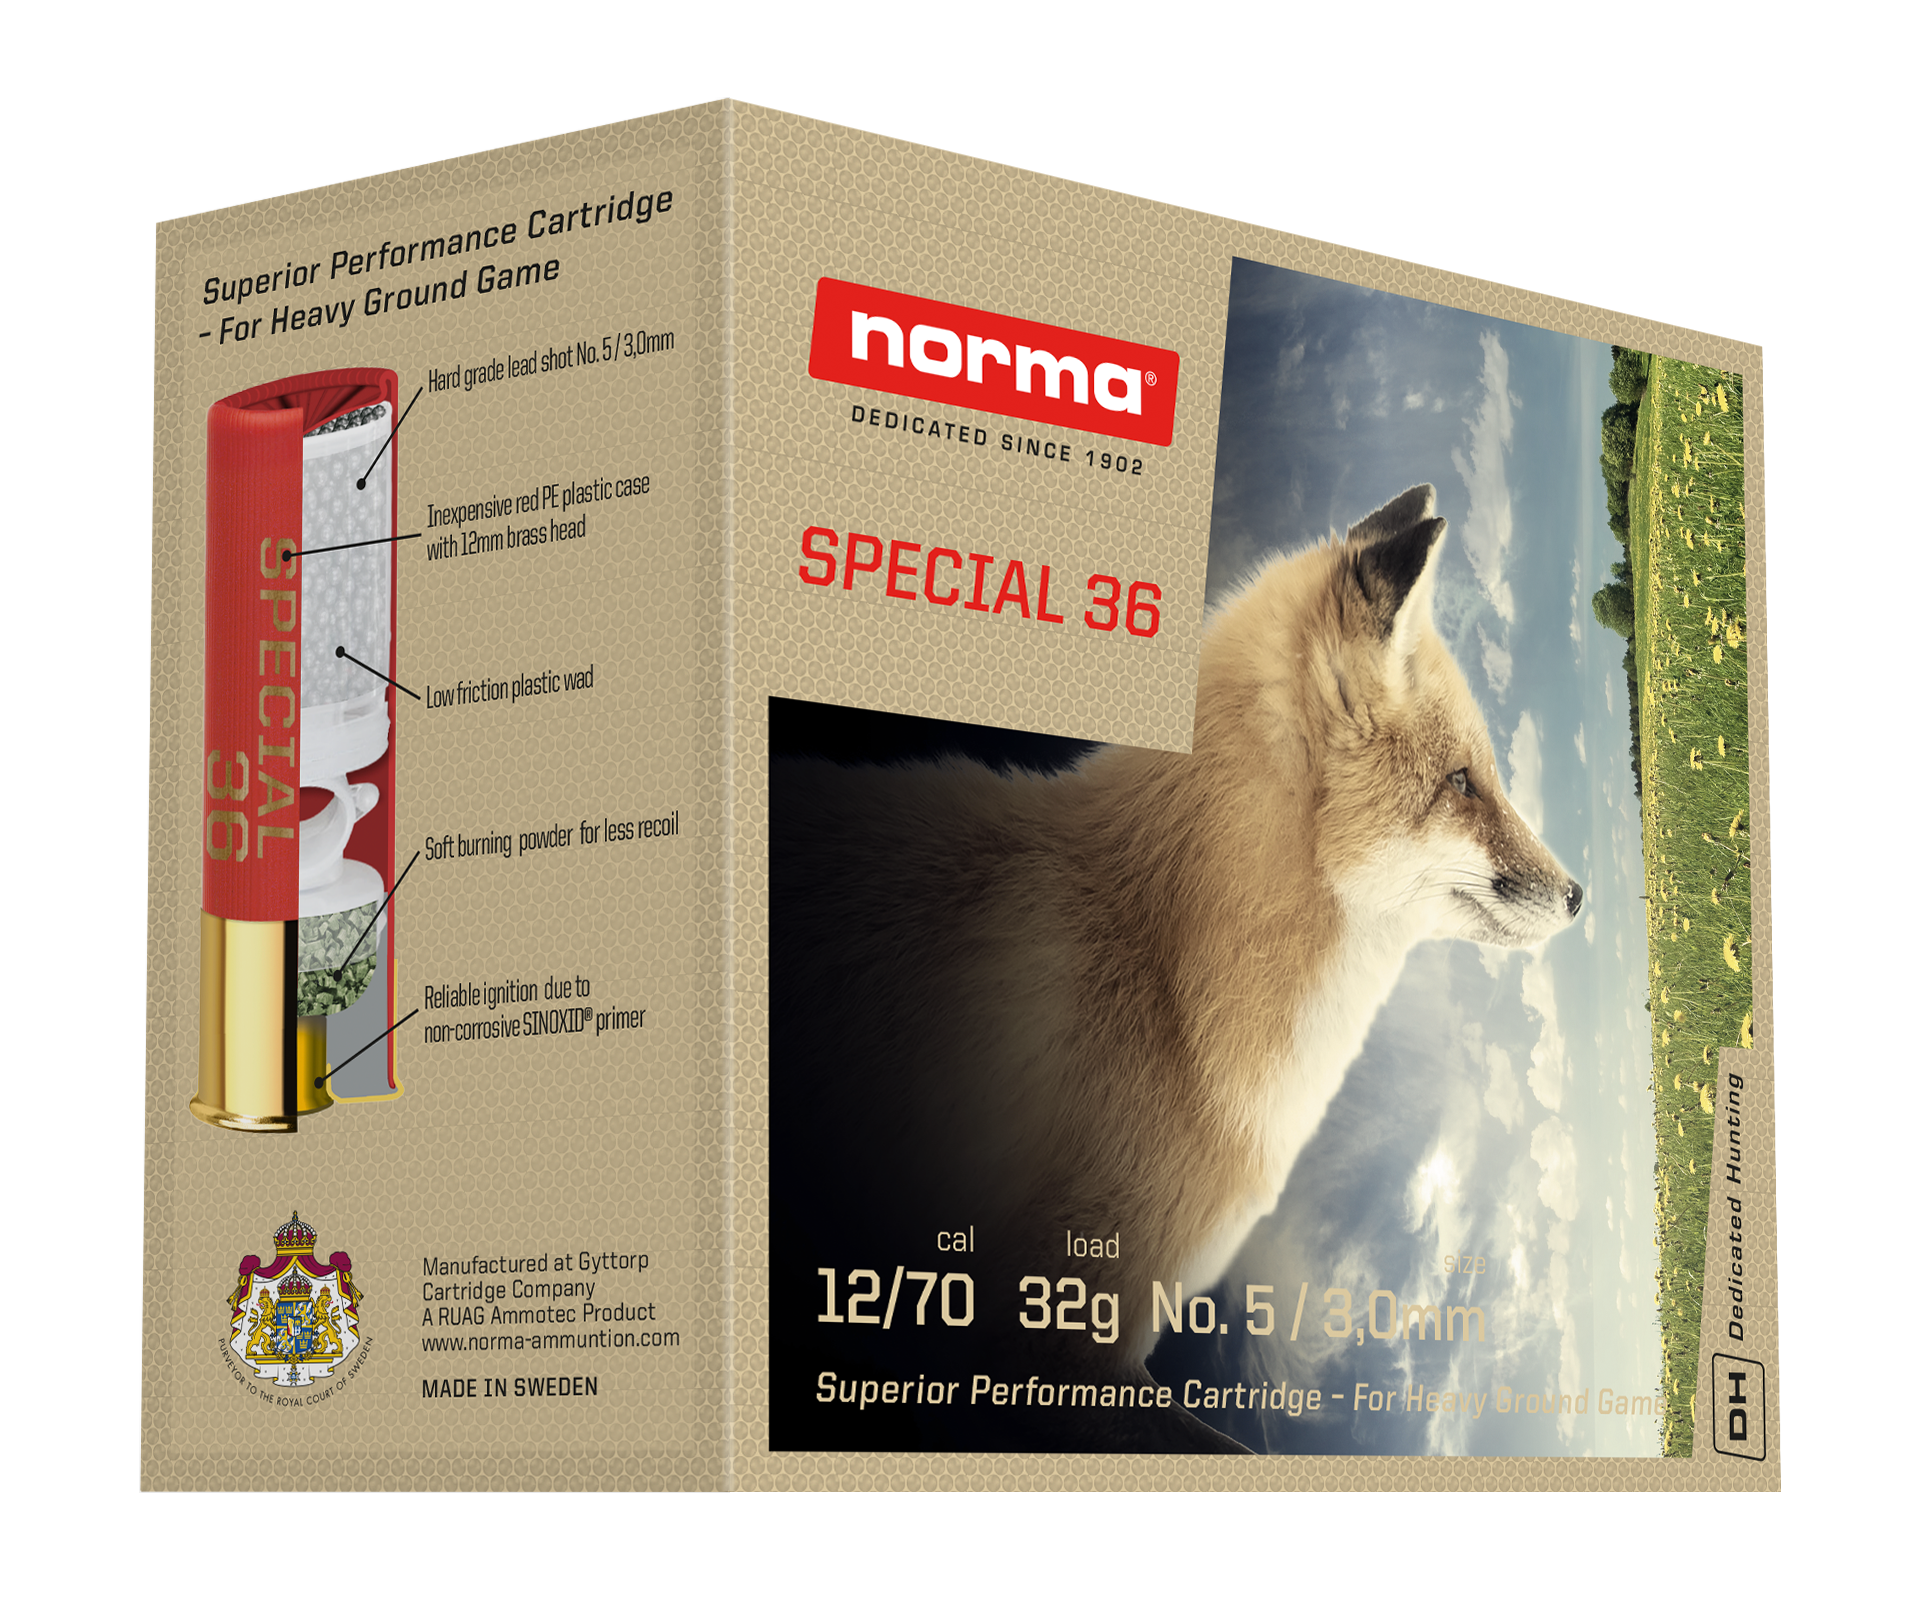 Norma Special 36g 12/70 US5